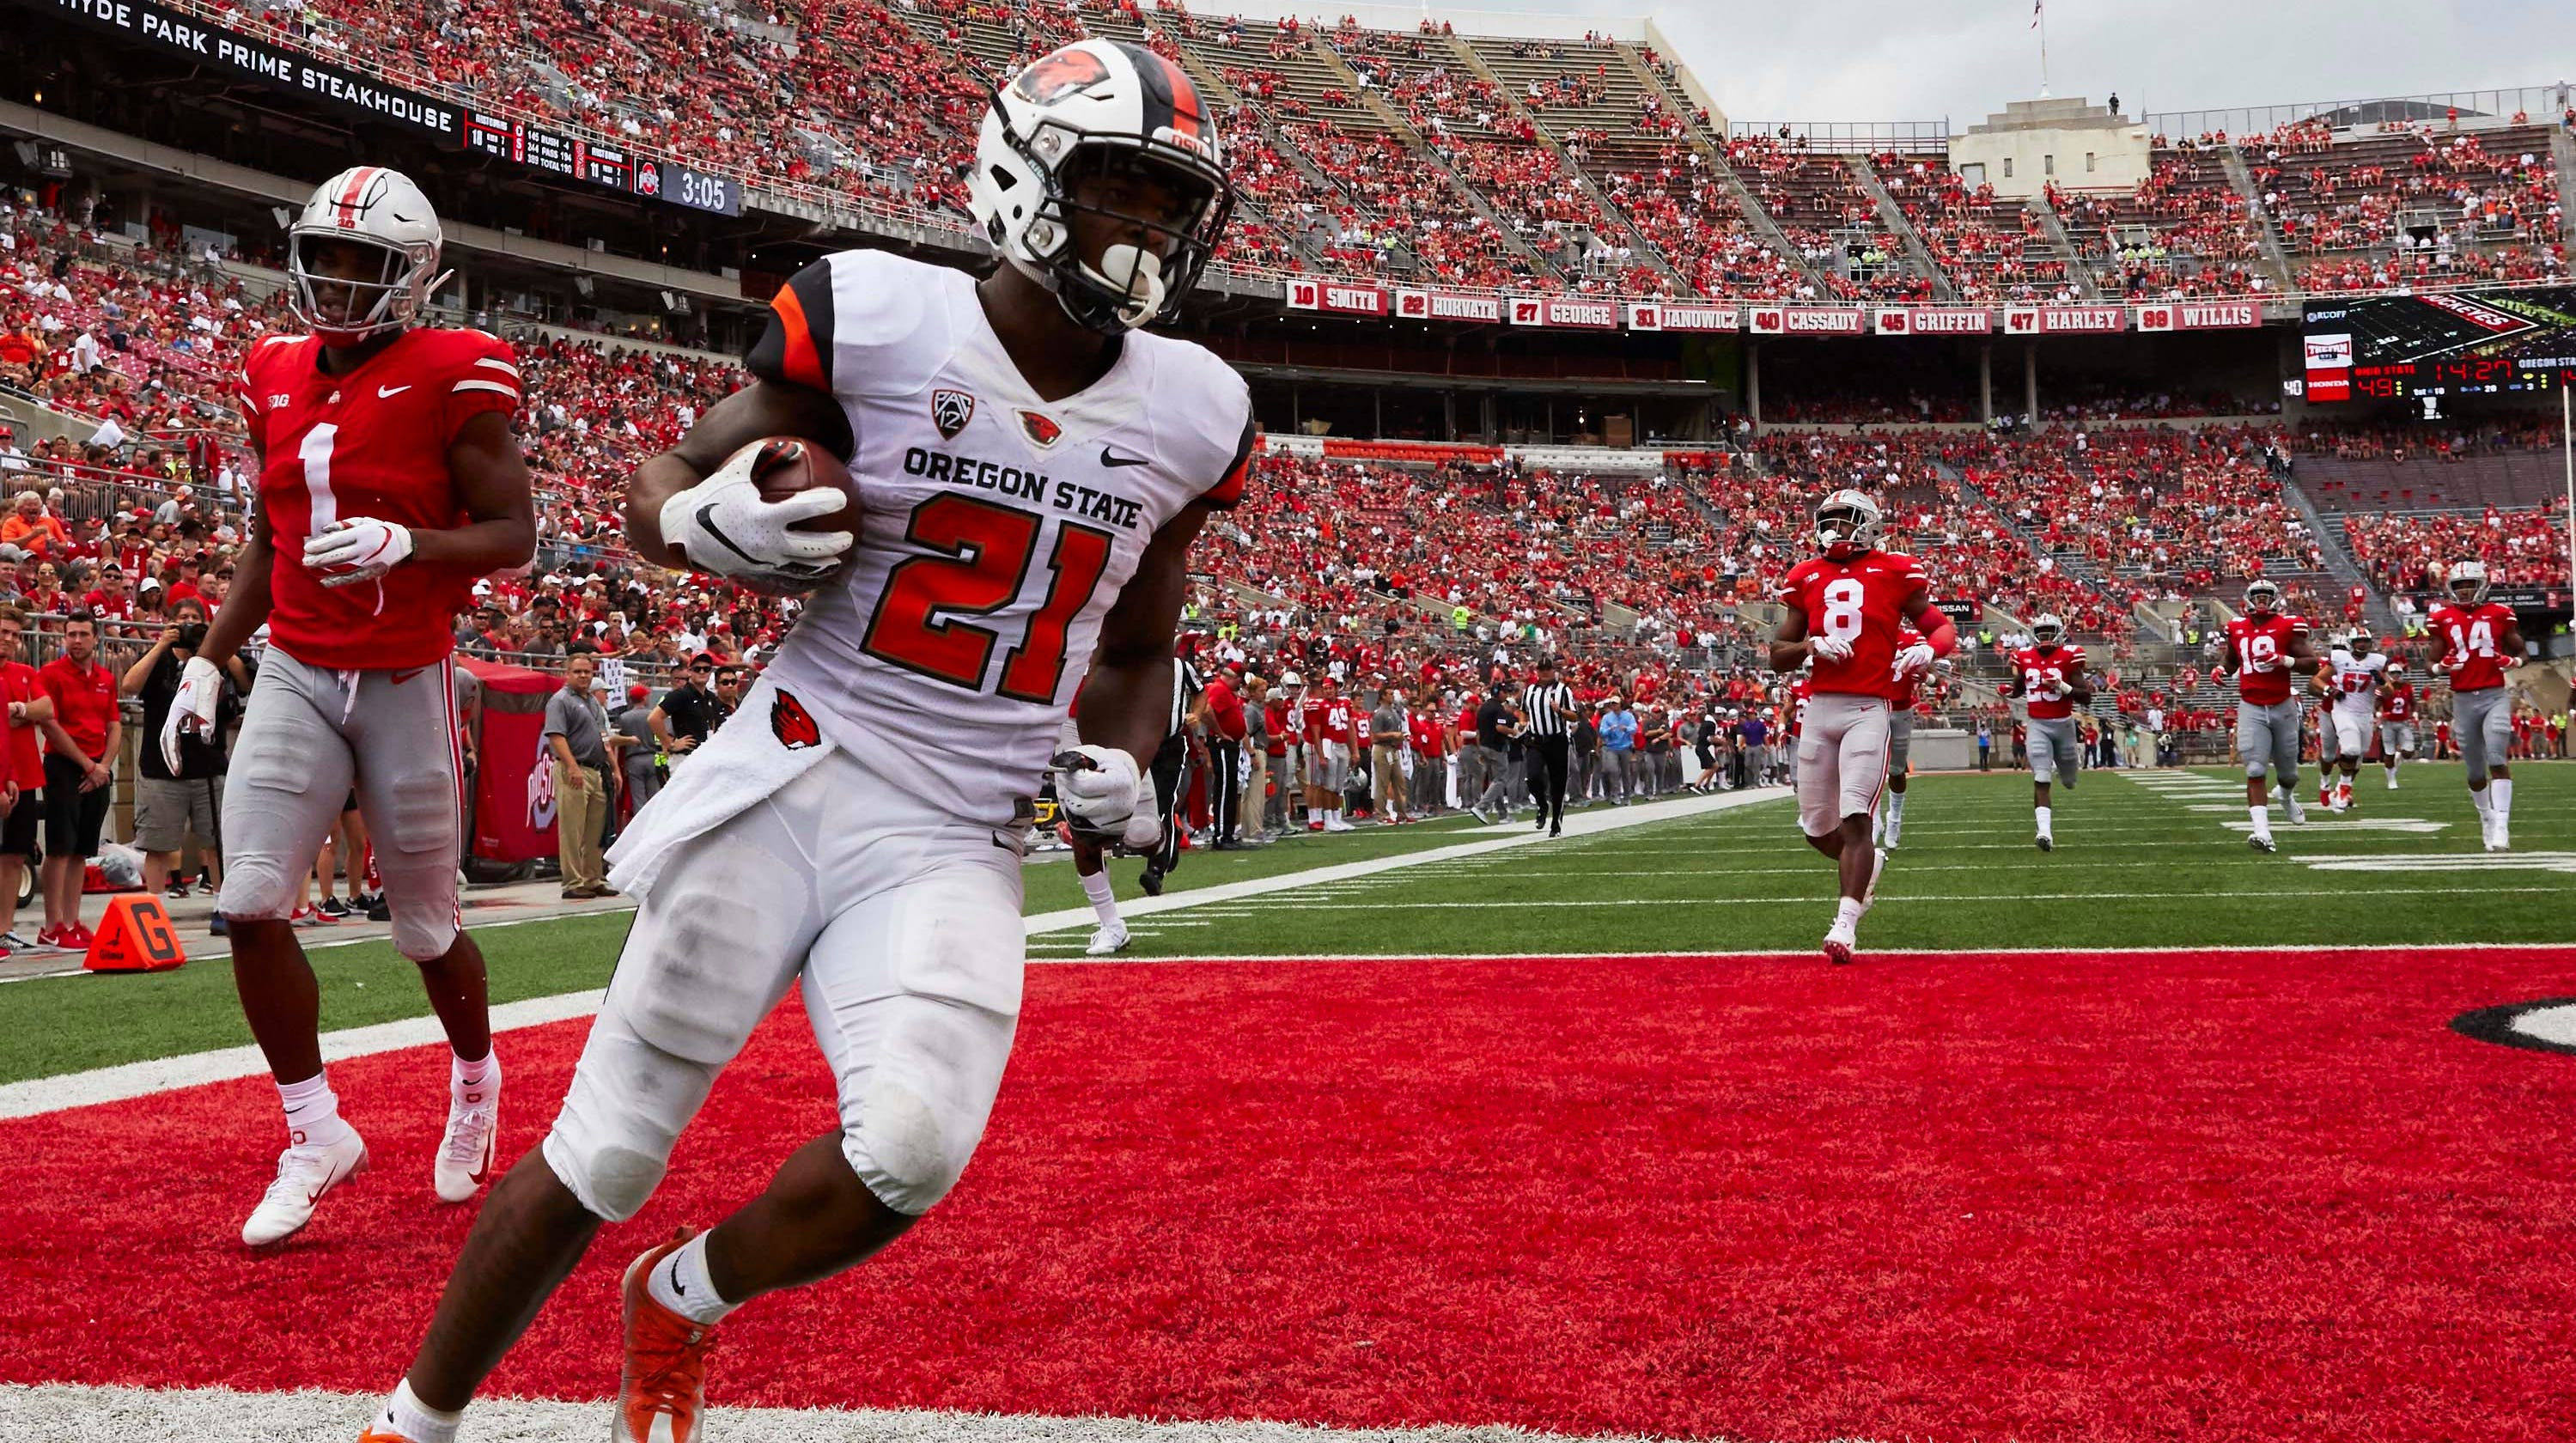 College Football Oregon State Beavers Loses To Ohio State Buckeyes